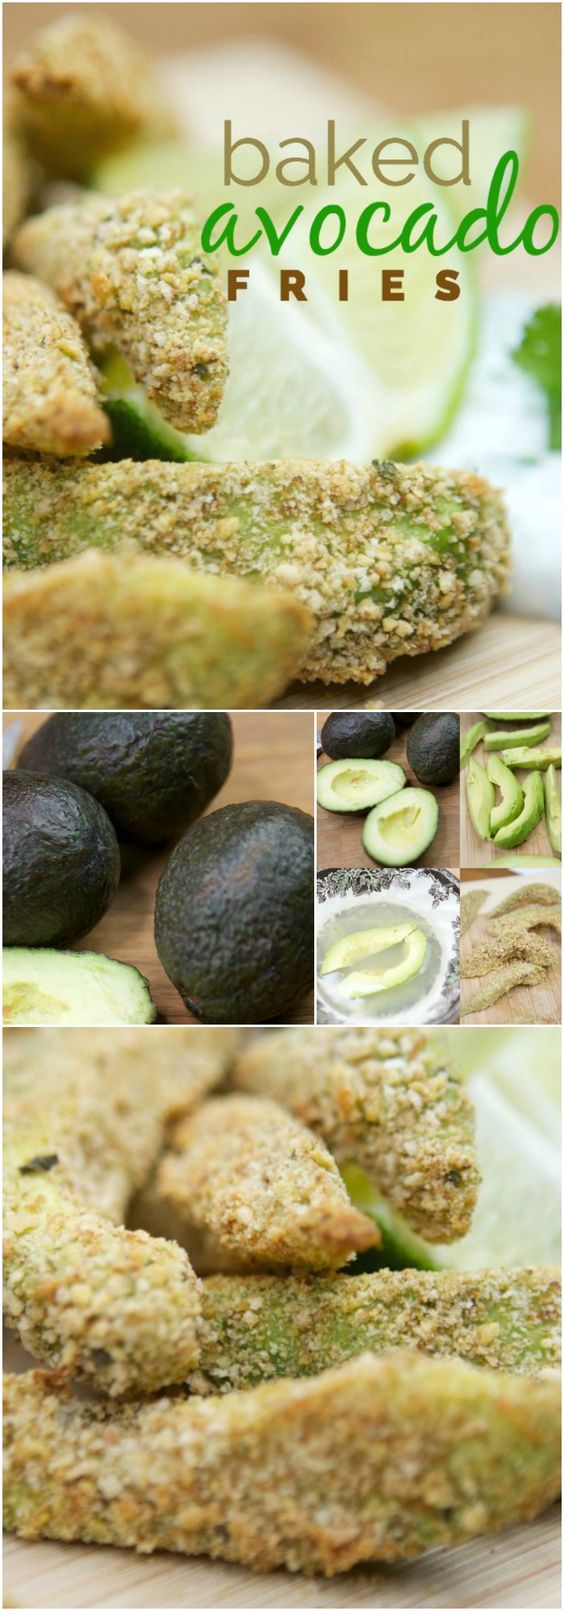 ... avocado breads dishes fun parties food baked avocado fries sauces food